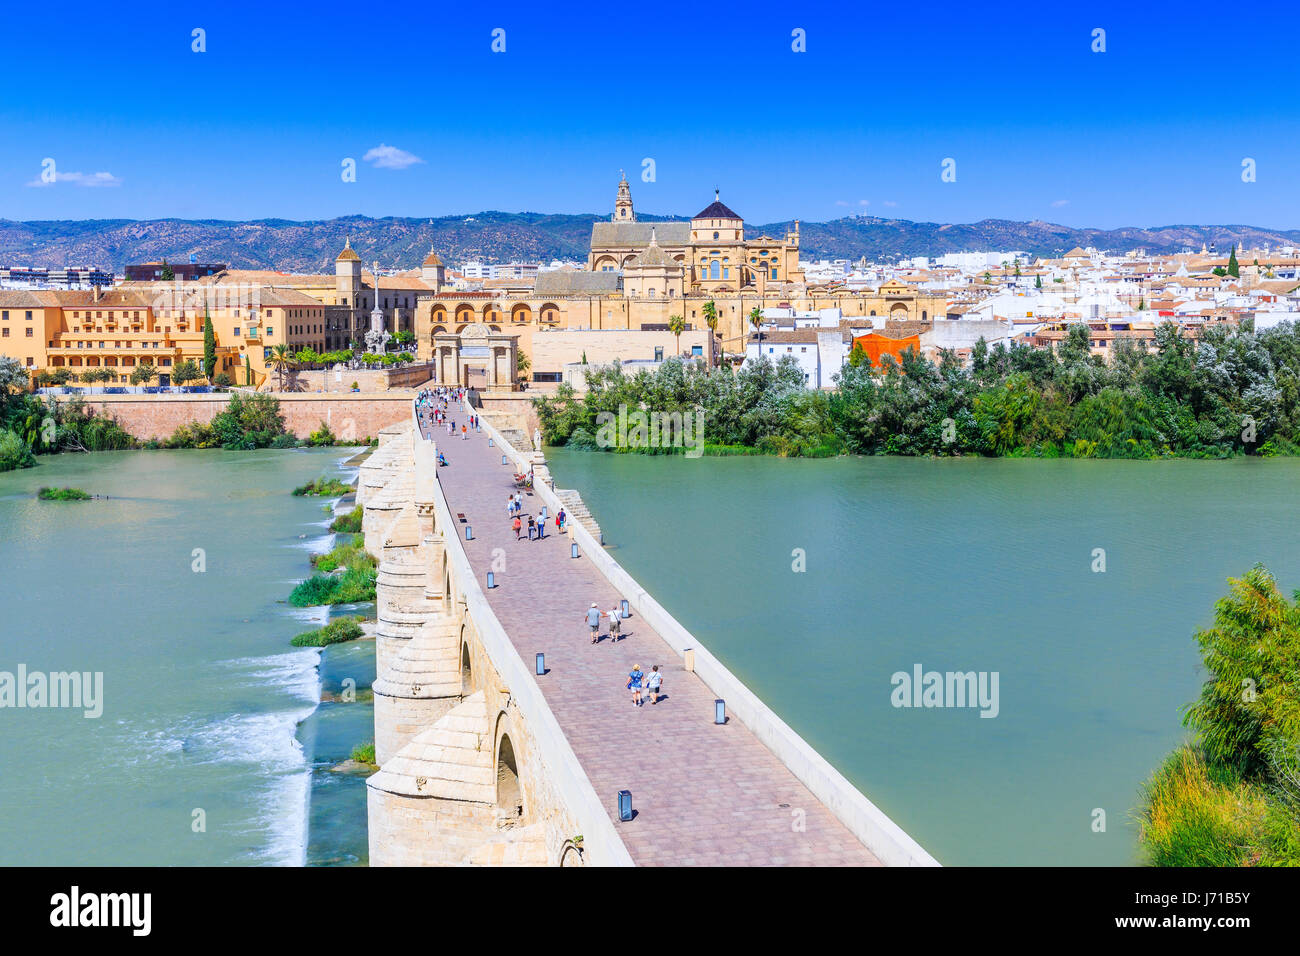 Cordoba, Spain. The Roman Bridge and Mosque (Cathedral) on the Guadalquivir River. Stock Photo